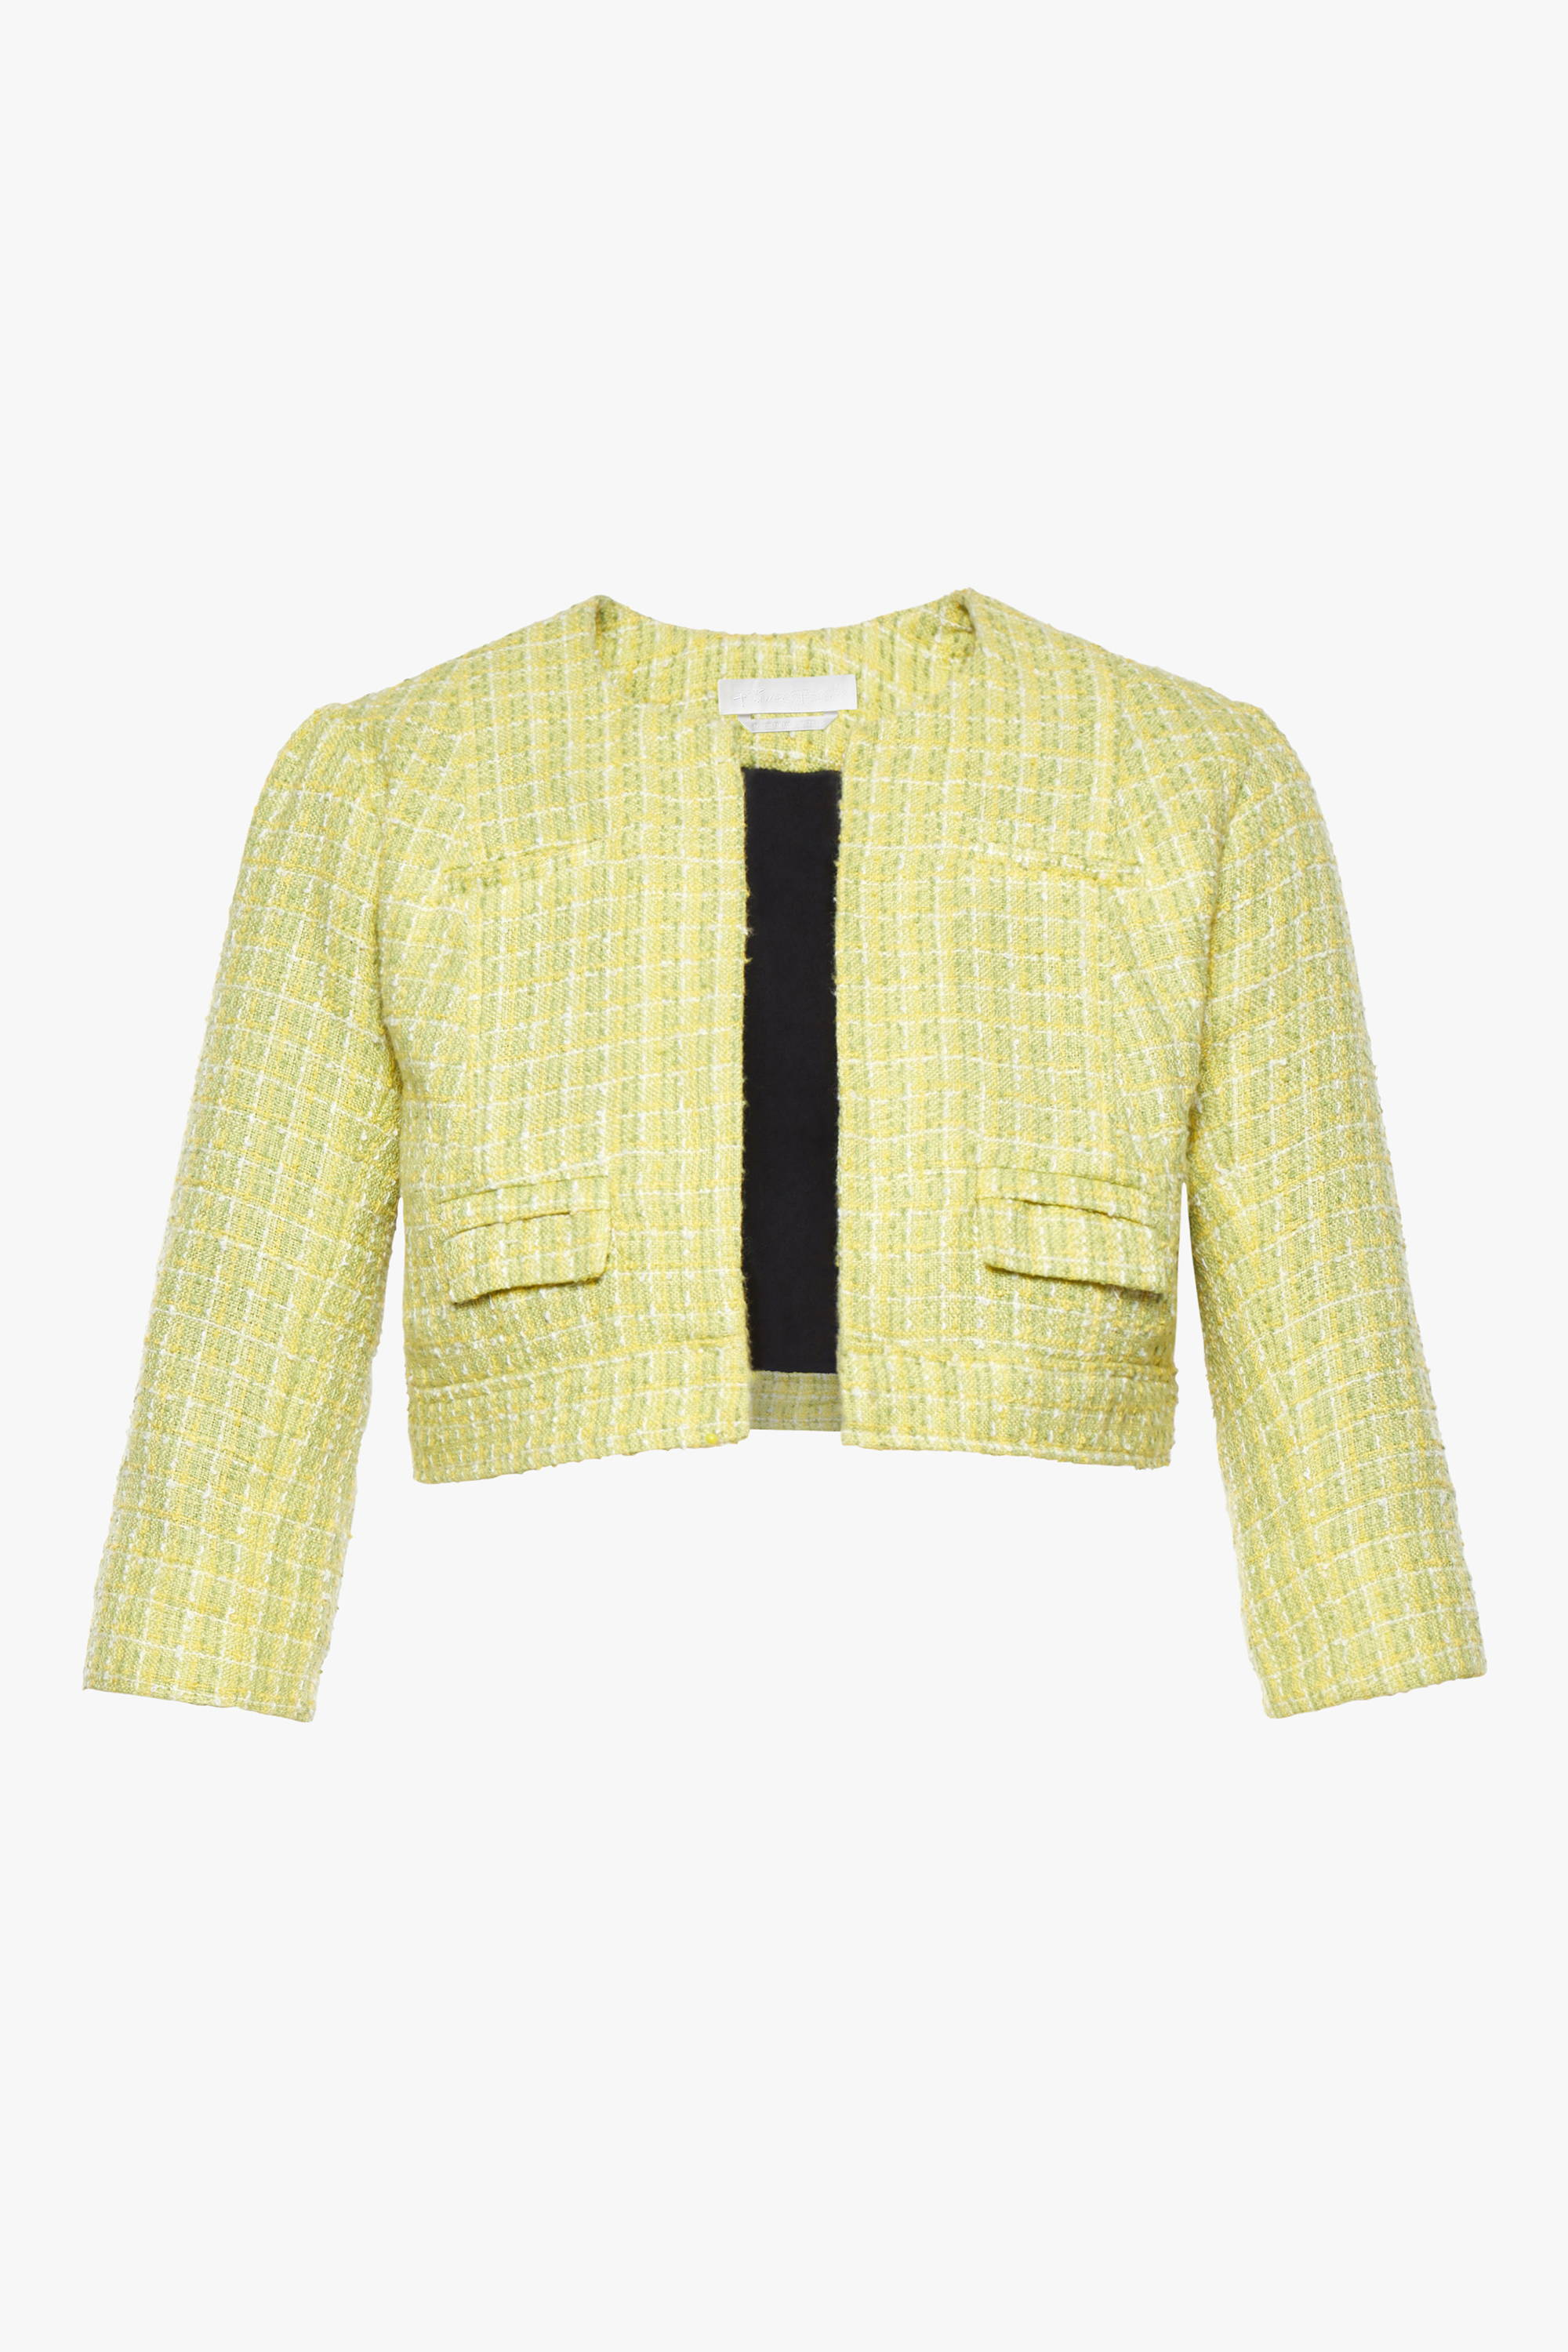 The maternity friendly Beverly jacket in lime boucle